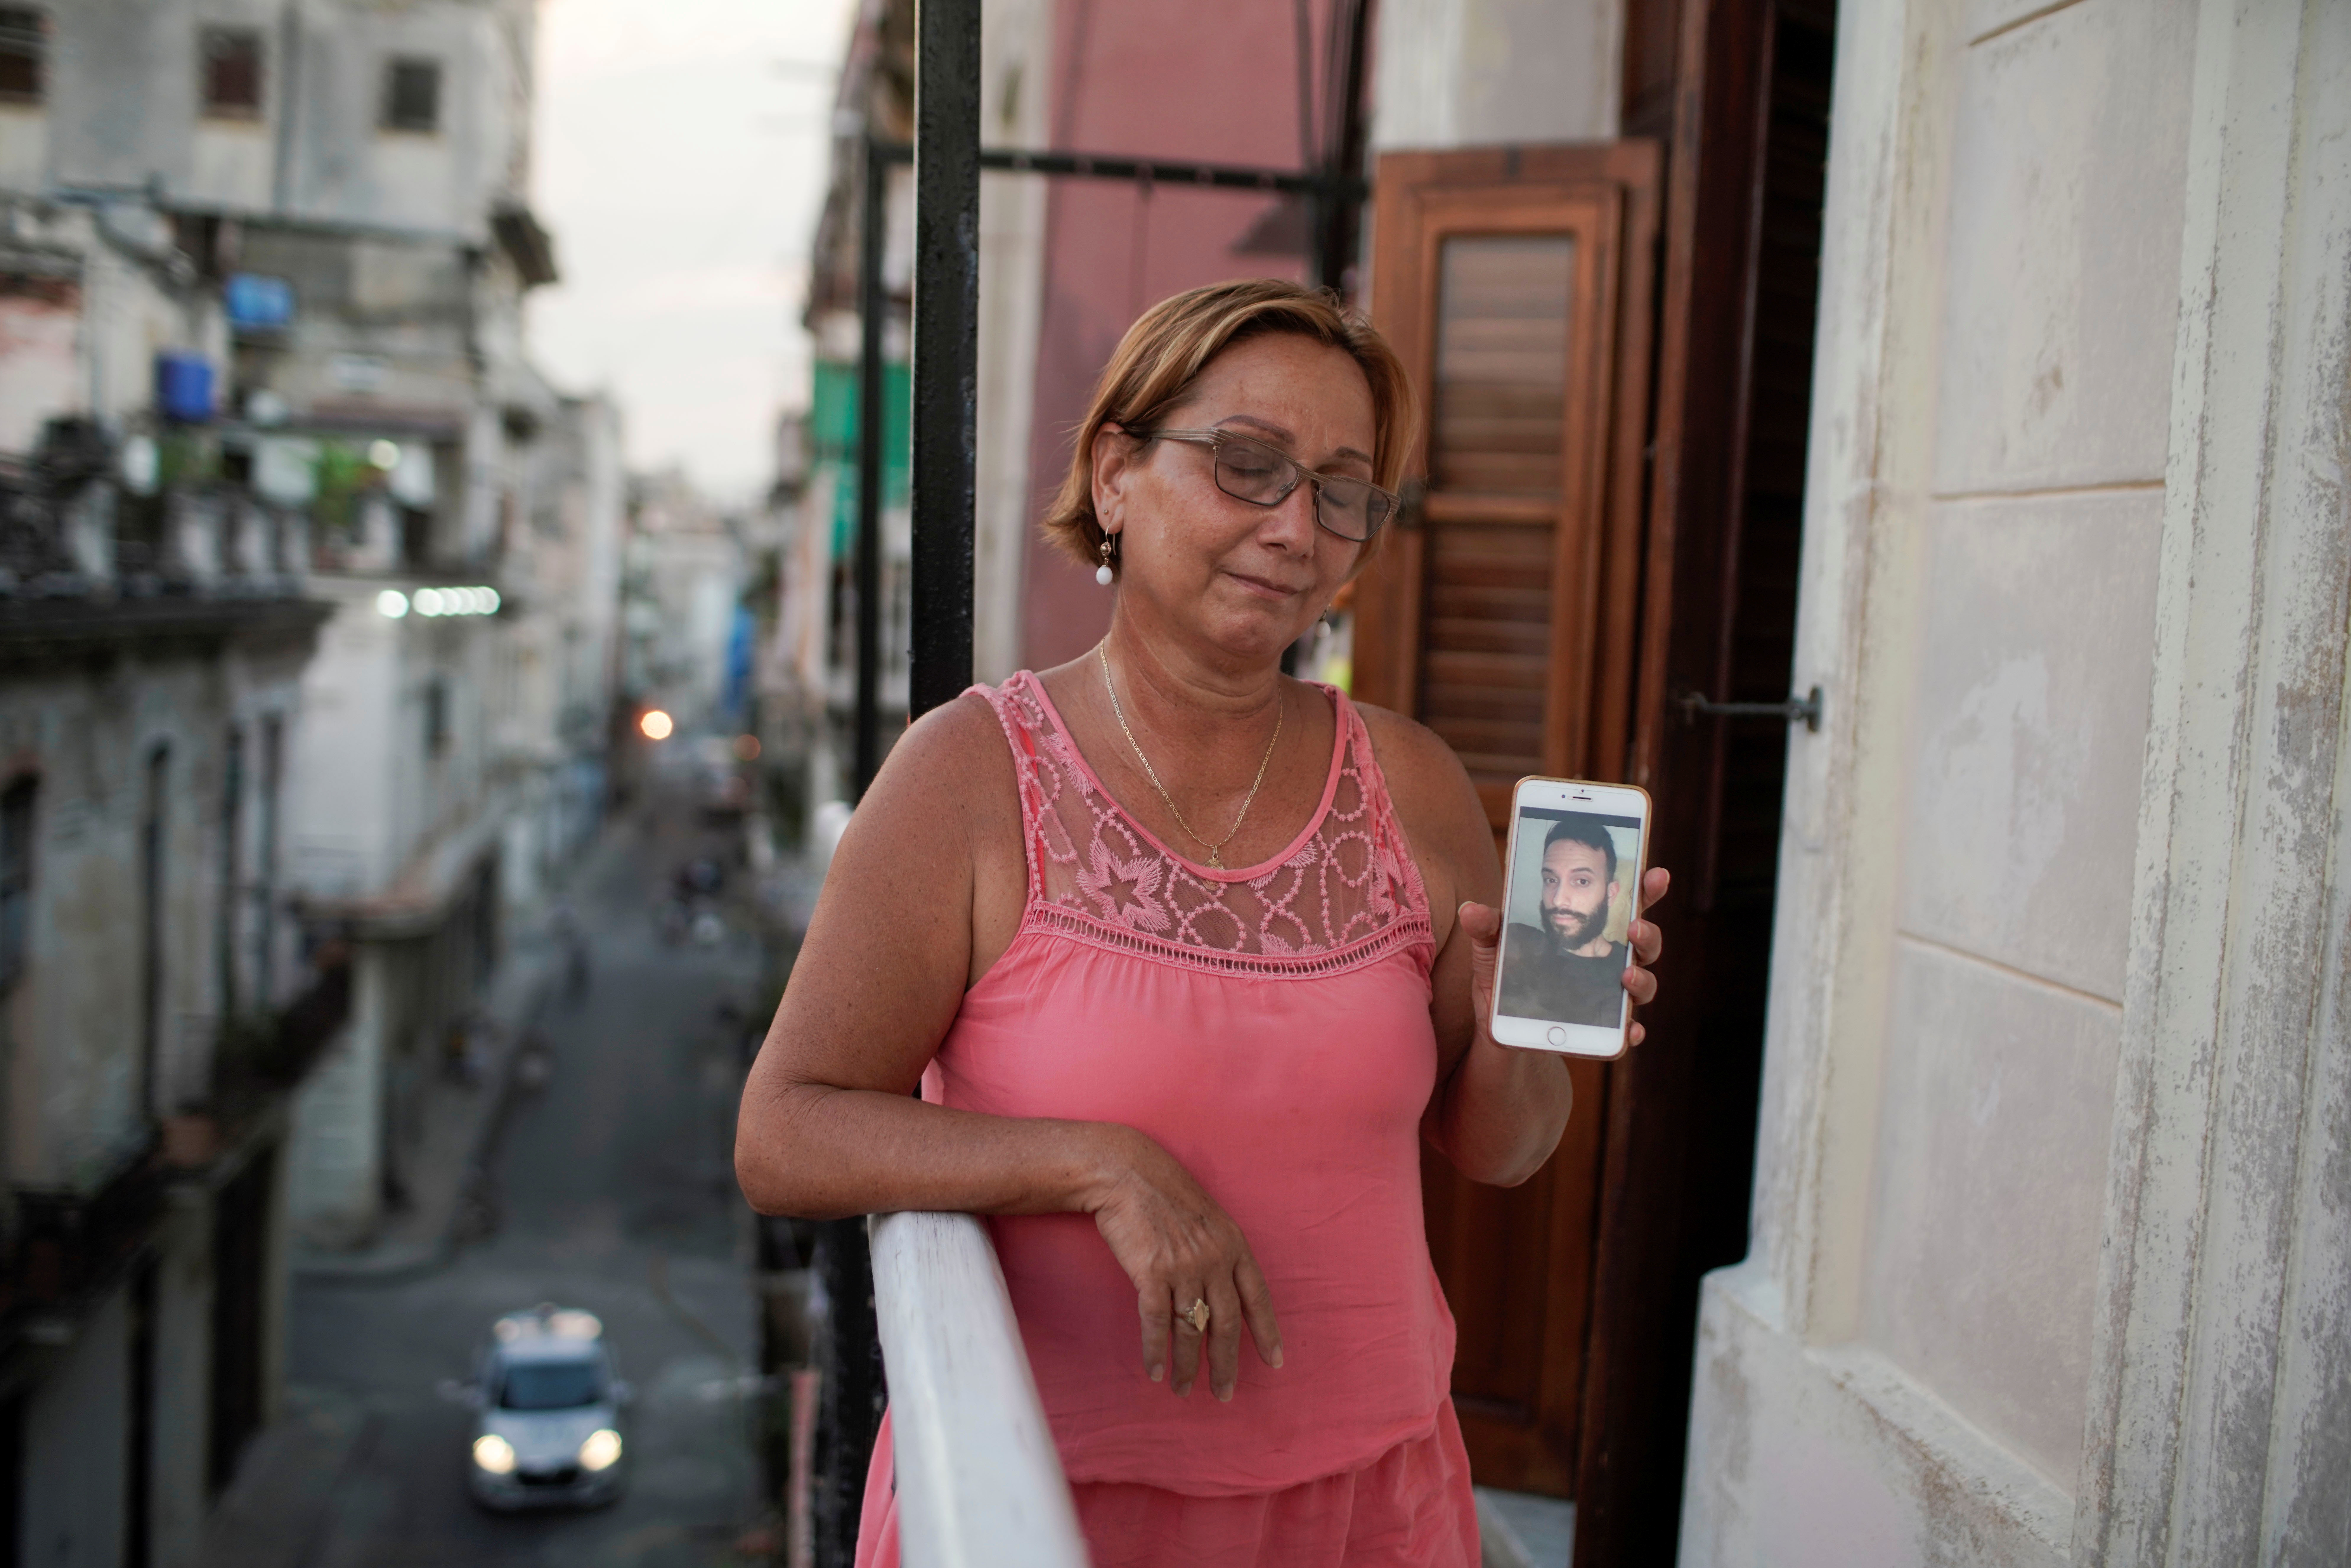 Raisa Gonzalez reacts as she shows a picture of her son Angelo Troya Gonzalez, an artist sanctioned after protests, in Havana, Cuba, July 20, 2021. REUTERS/Alexandre Meneghini